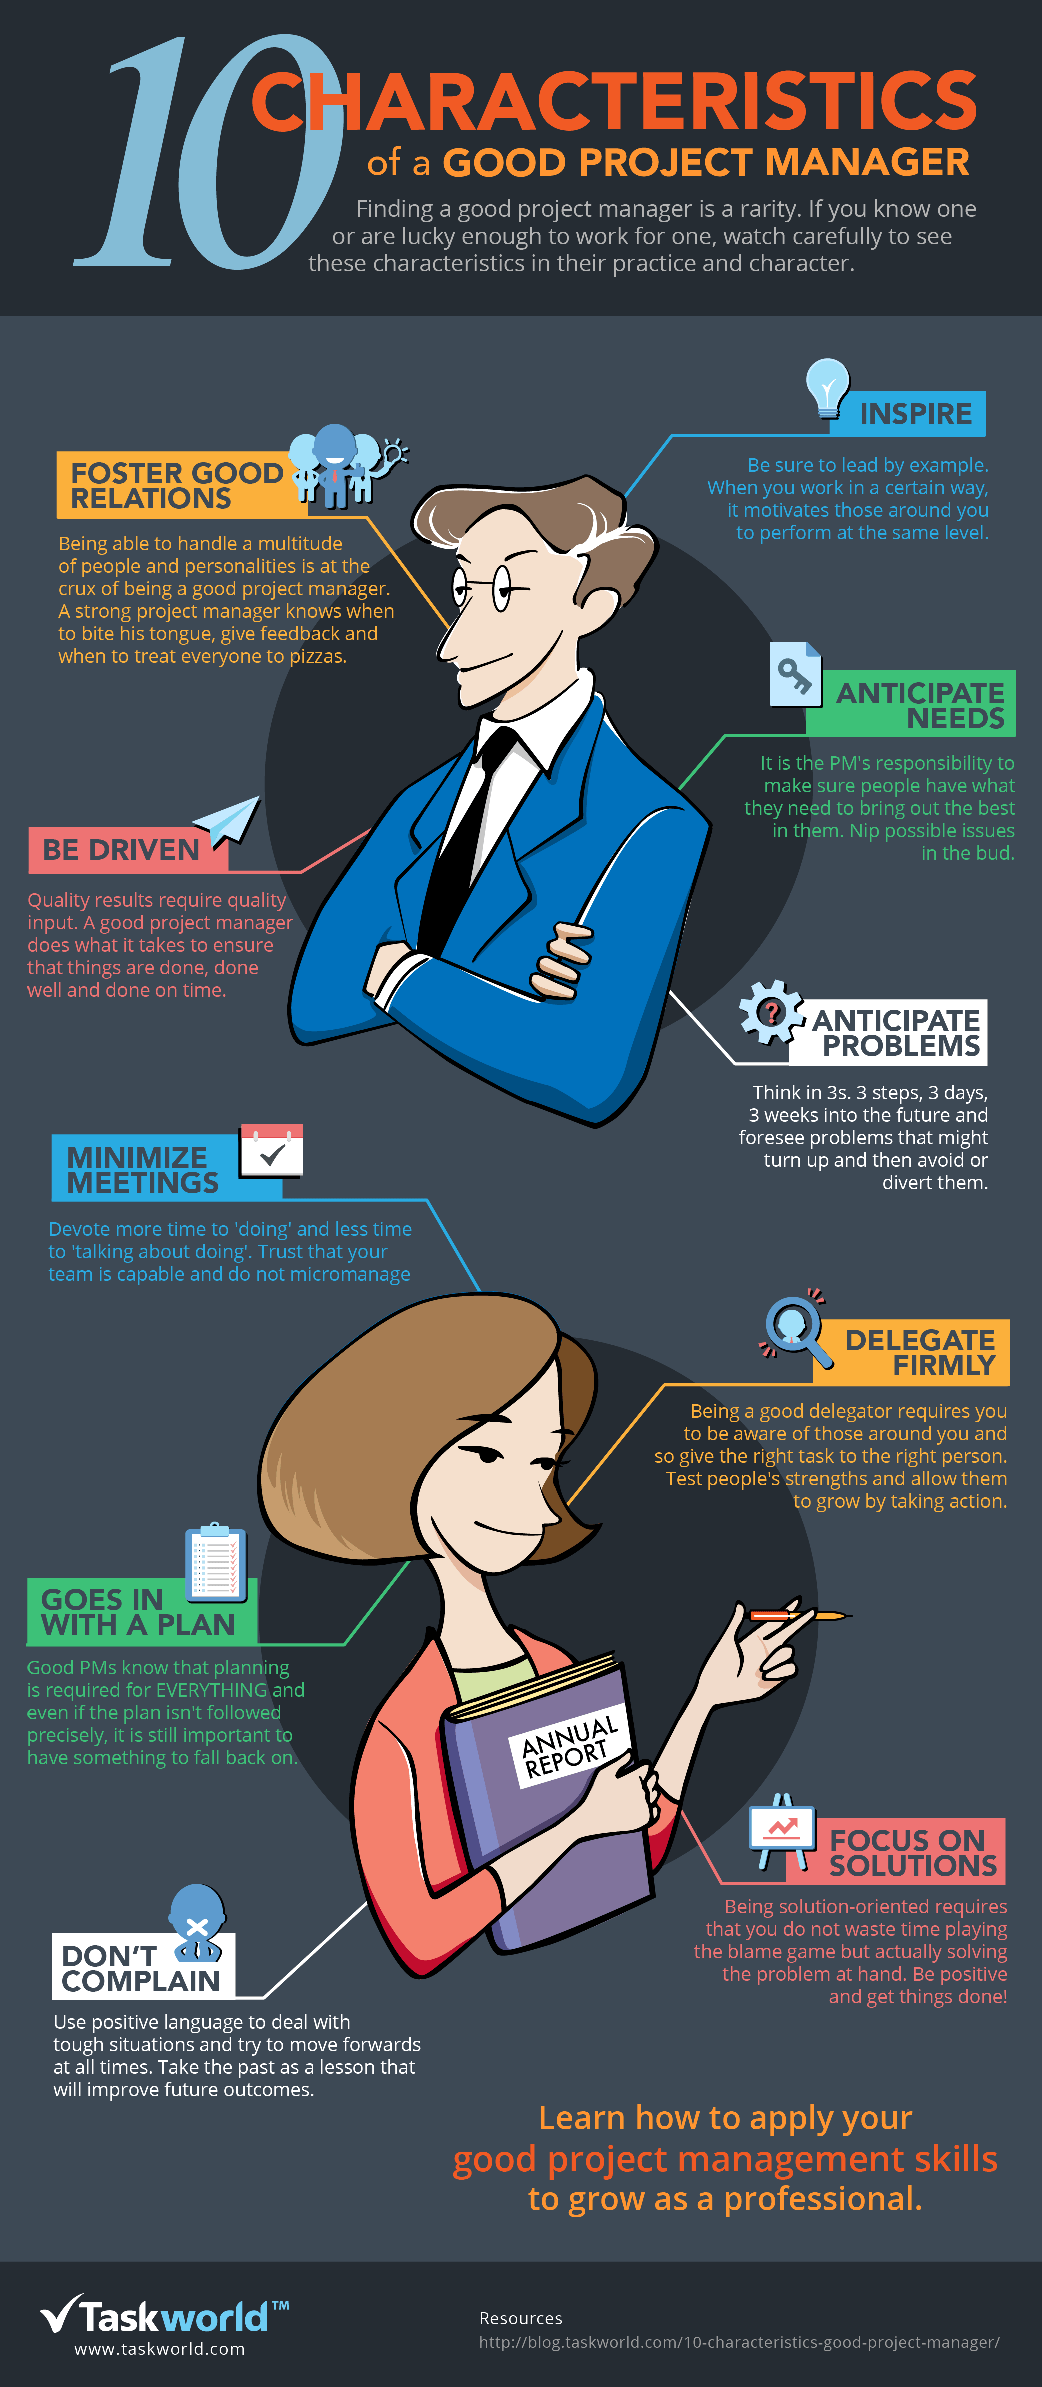 10-characteristics-of-a-good-project-manager-1000px